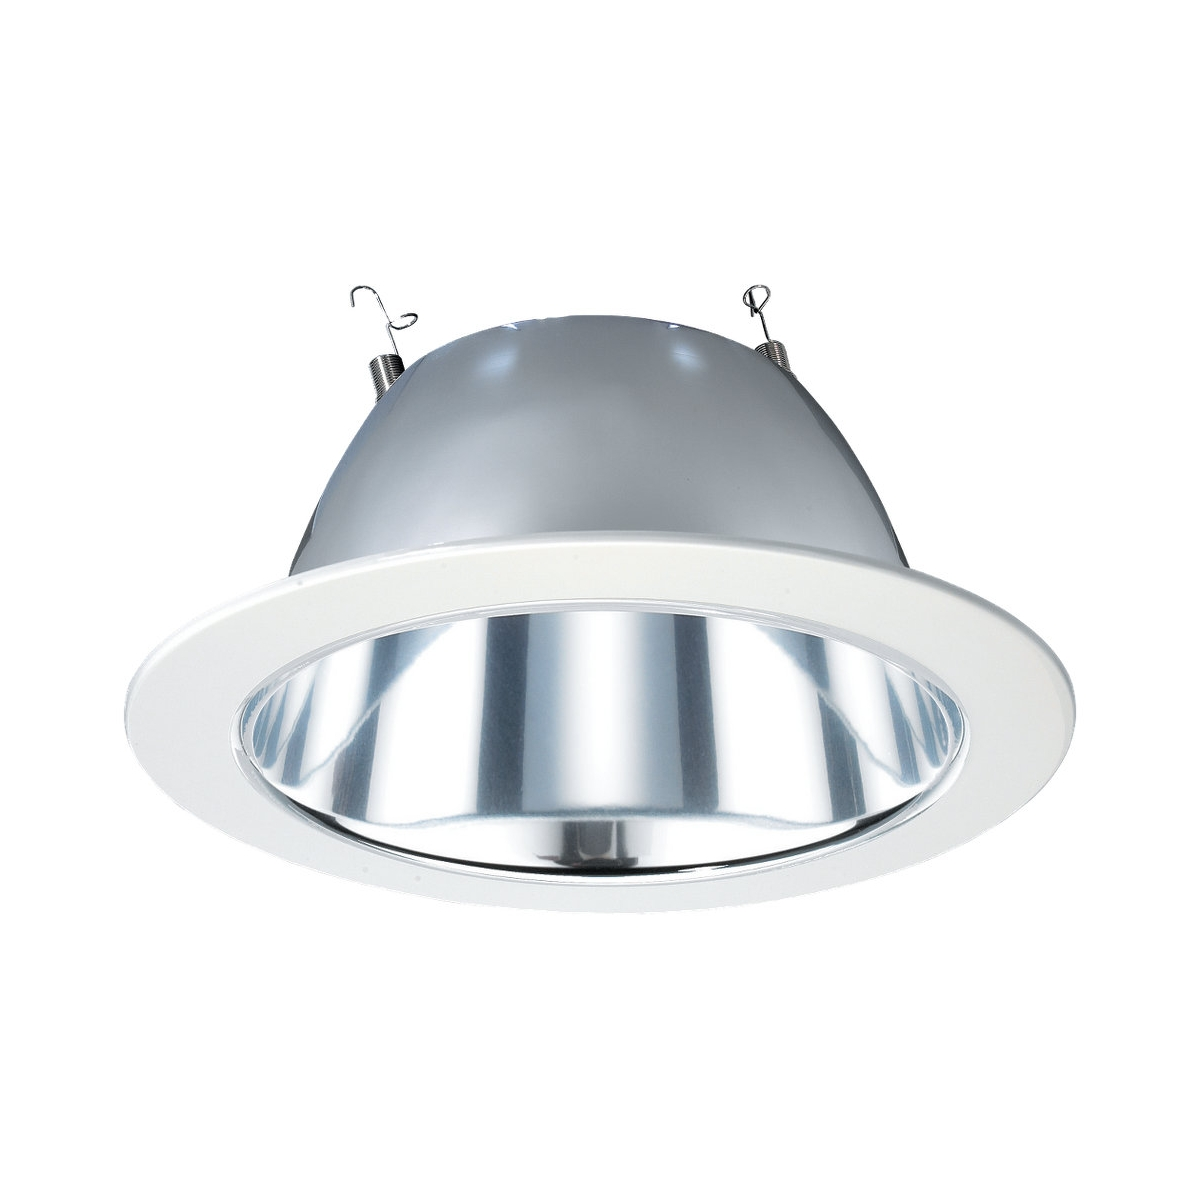 Sea Gull Lighting Signature Recessed Light in Polished Aluminum 1132-22 photo